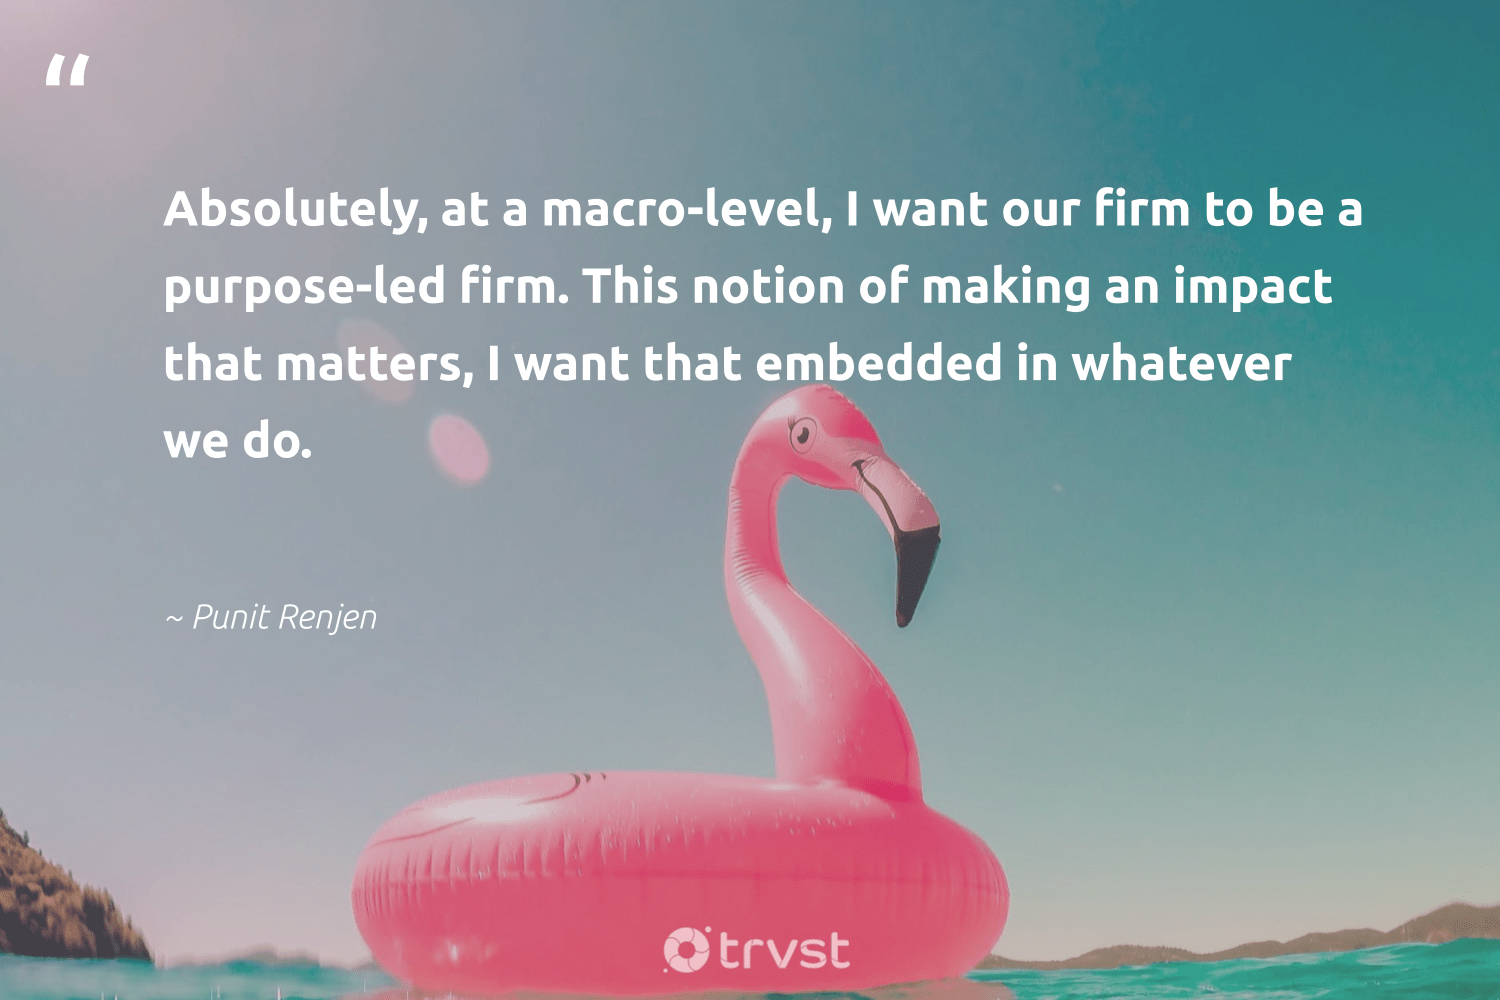 """Absolutely, at a macro-level, I want our firm to be a purpose-led firm. This notion of making an impact that matters, I want that embedded in whatever we do.""  - Punit Renjen #trvst #quotes #impact #purpose #findpurpose #weareallone #mindset #dosomething #findingpupose #dogood #changemakers #bethechange"